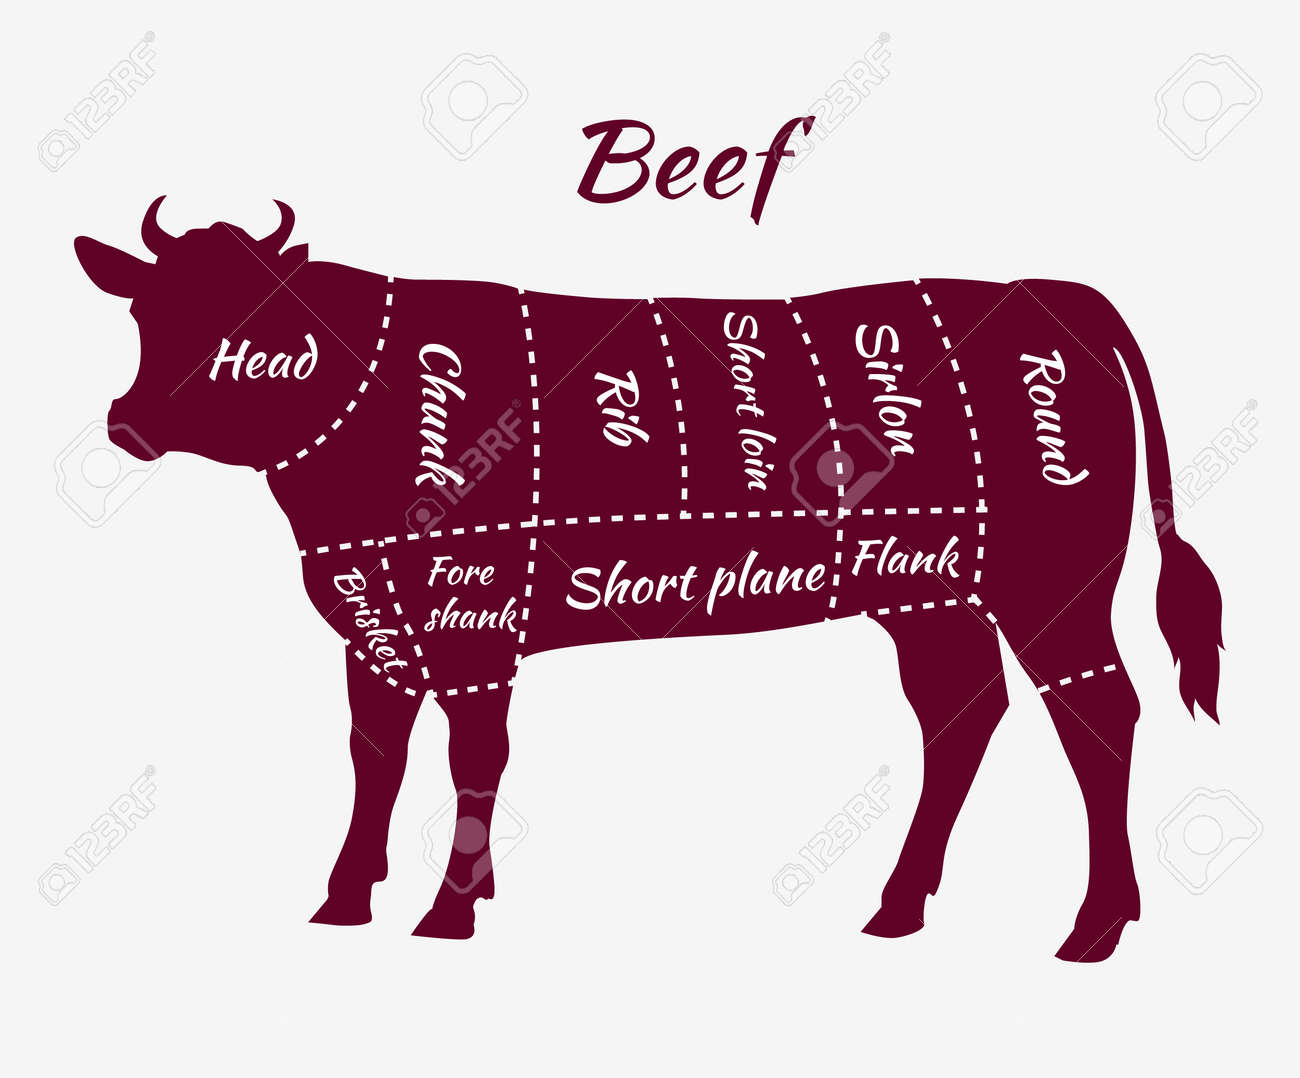 scheme of beef cuts for steak and roast  butcher cuts scheme  beef cuts  diagram in vintage style  meat cutting beef  menu template grilling steaks  and cow